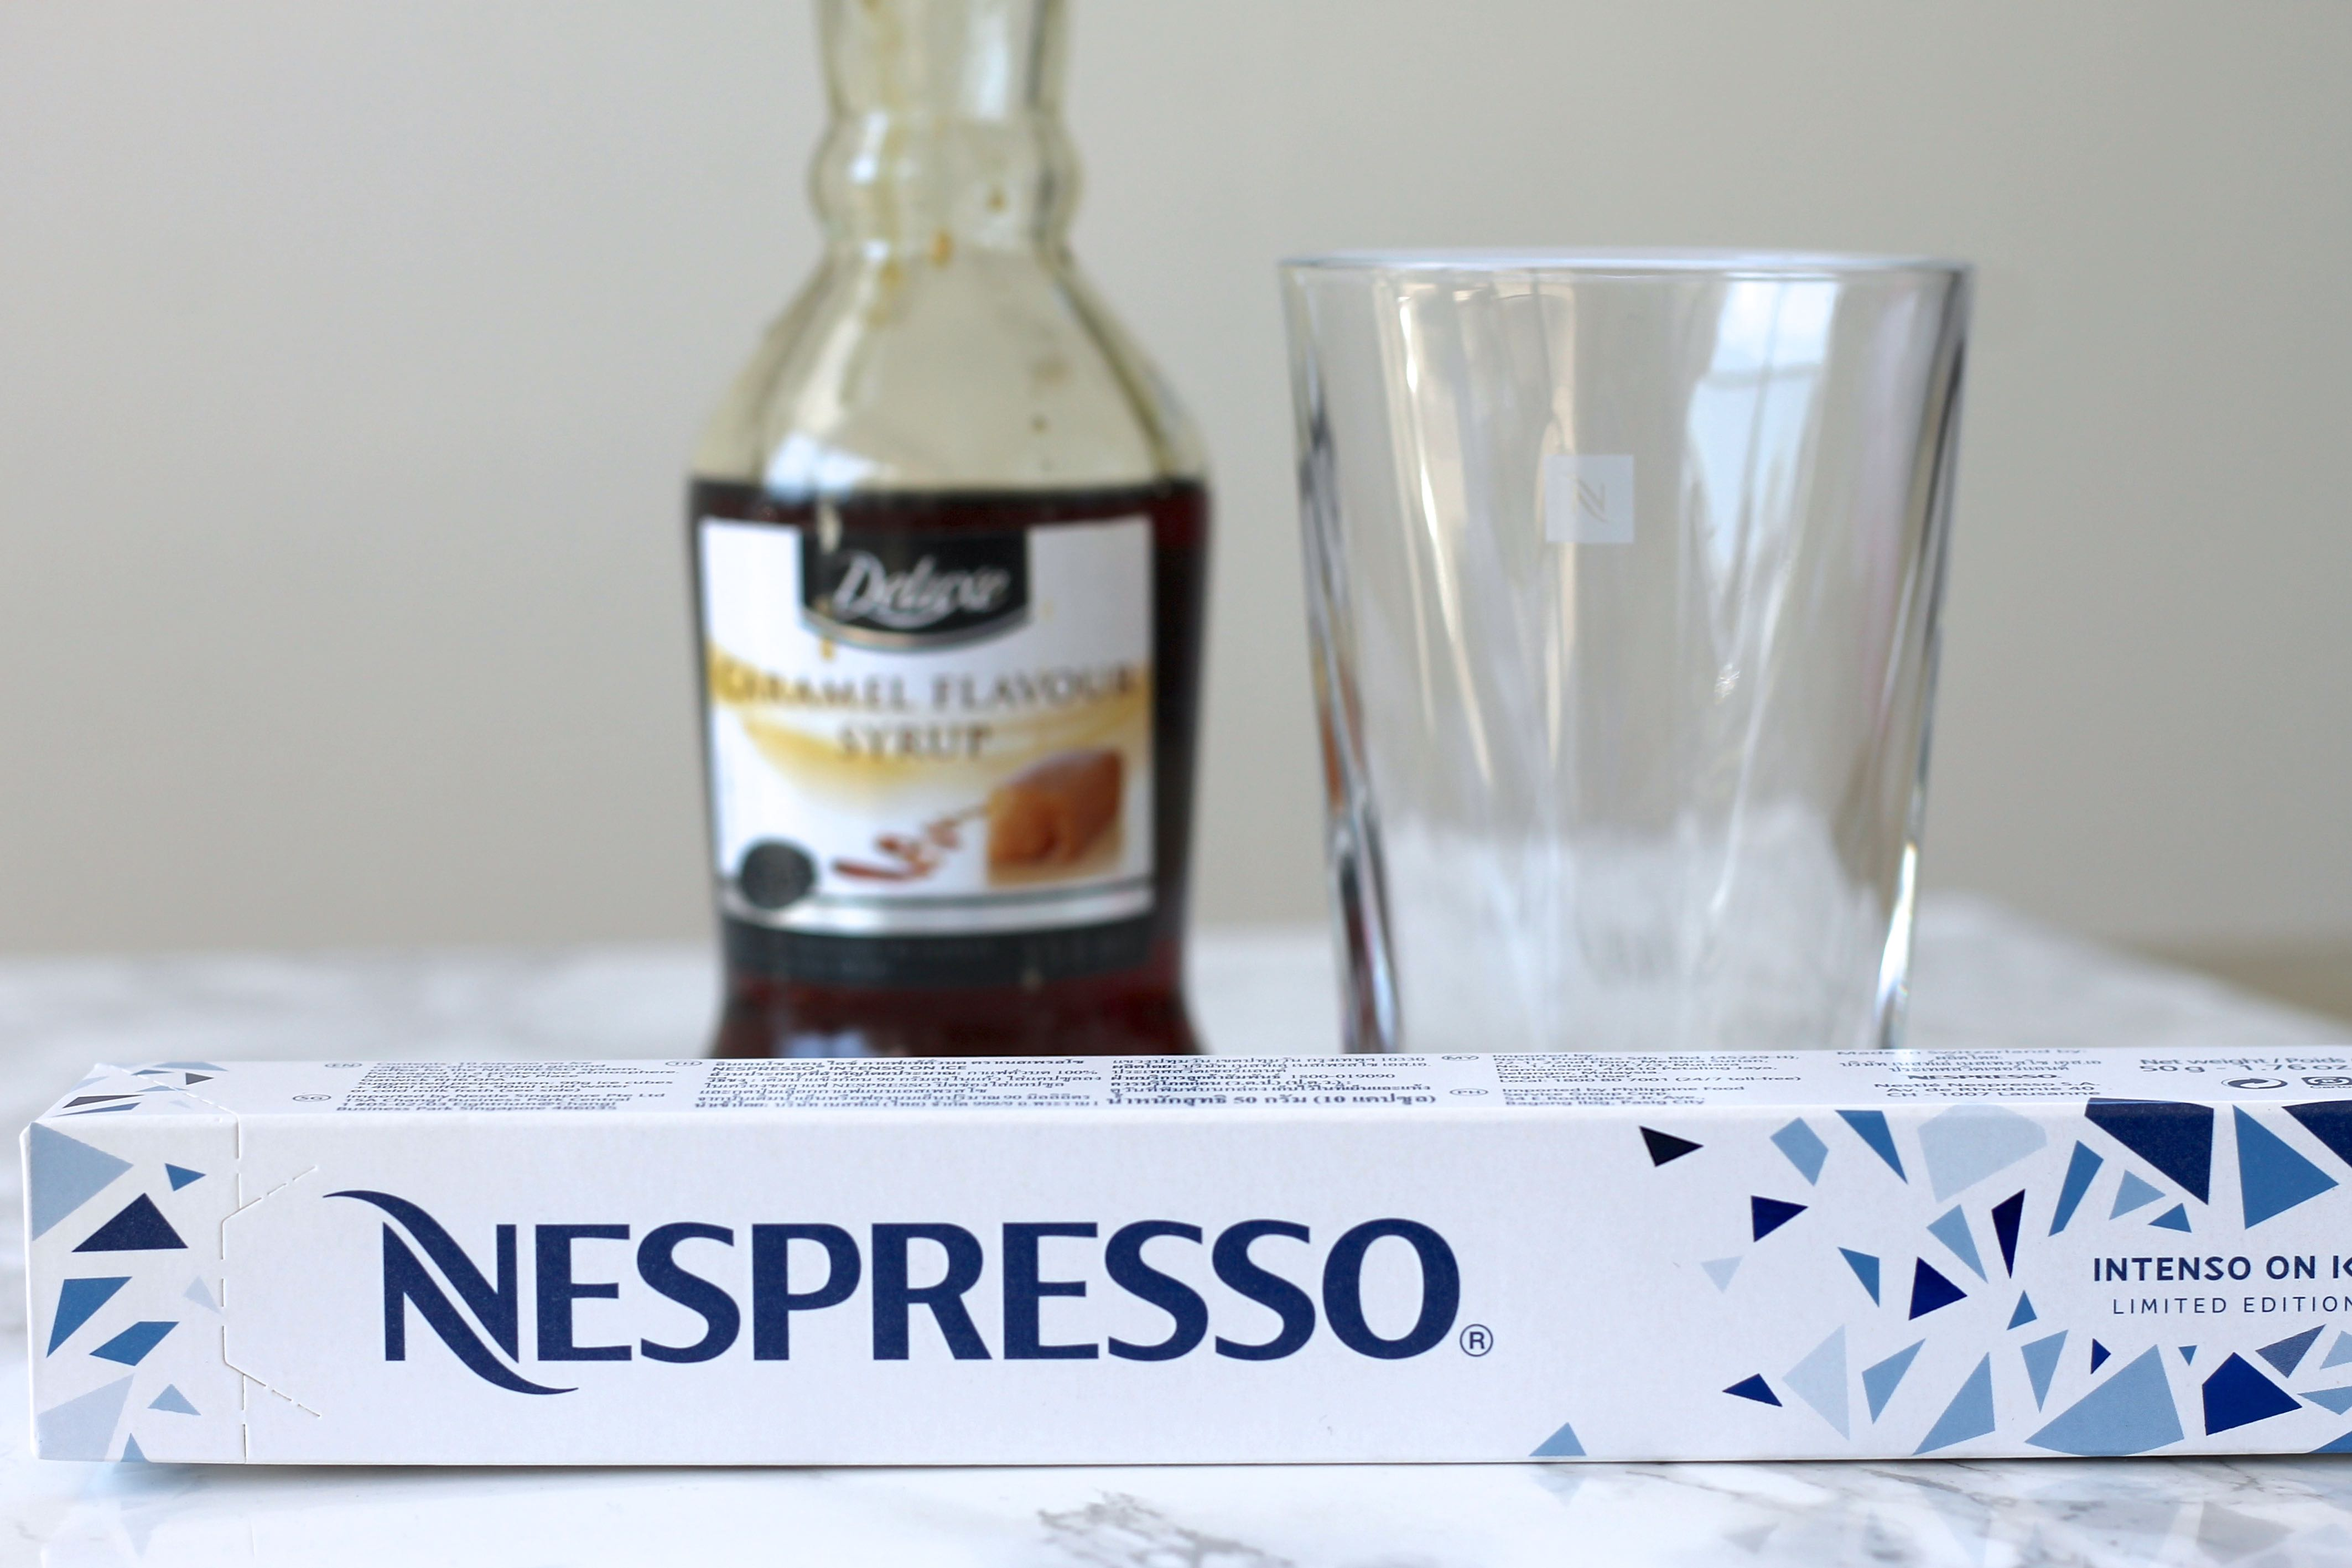 Nespresso iced caramel coffee recipe